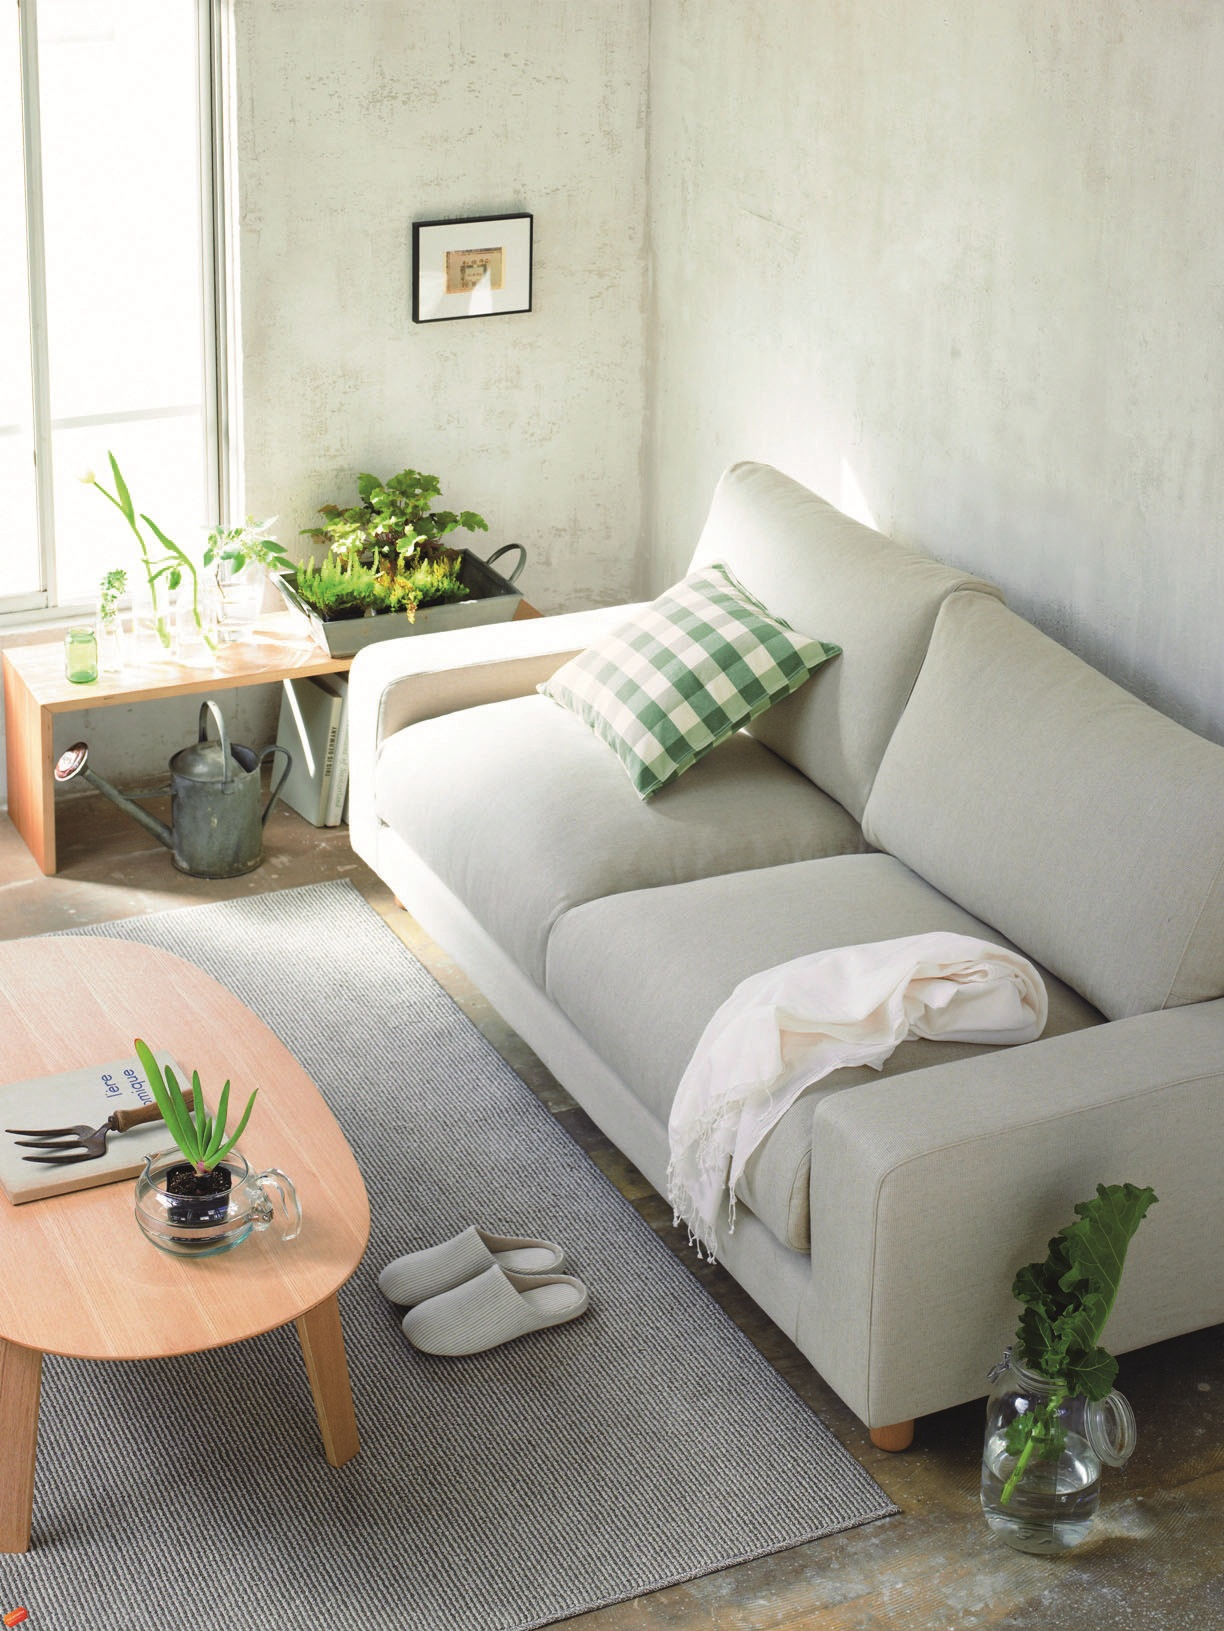 What Is In Living Room In Jaoan